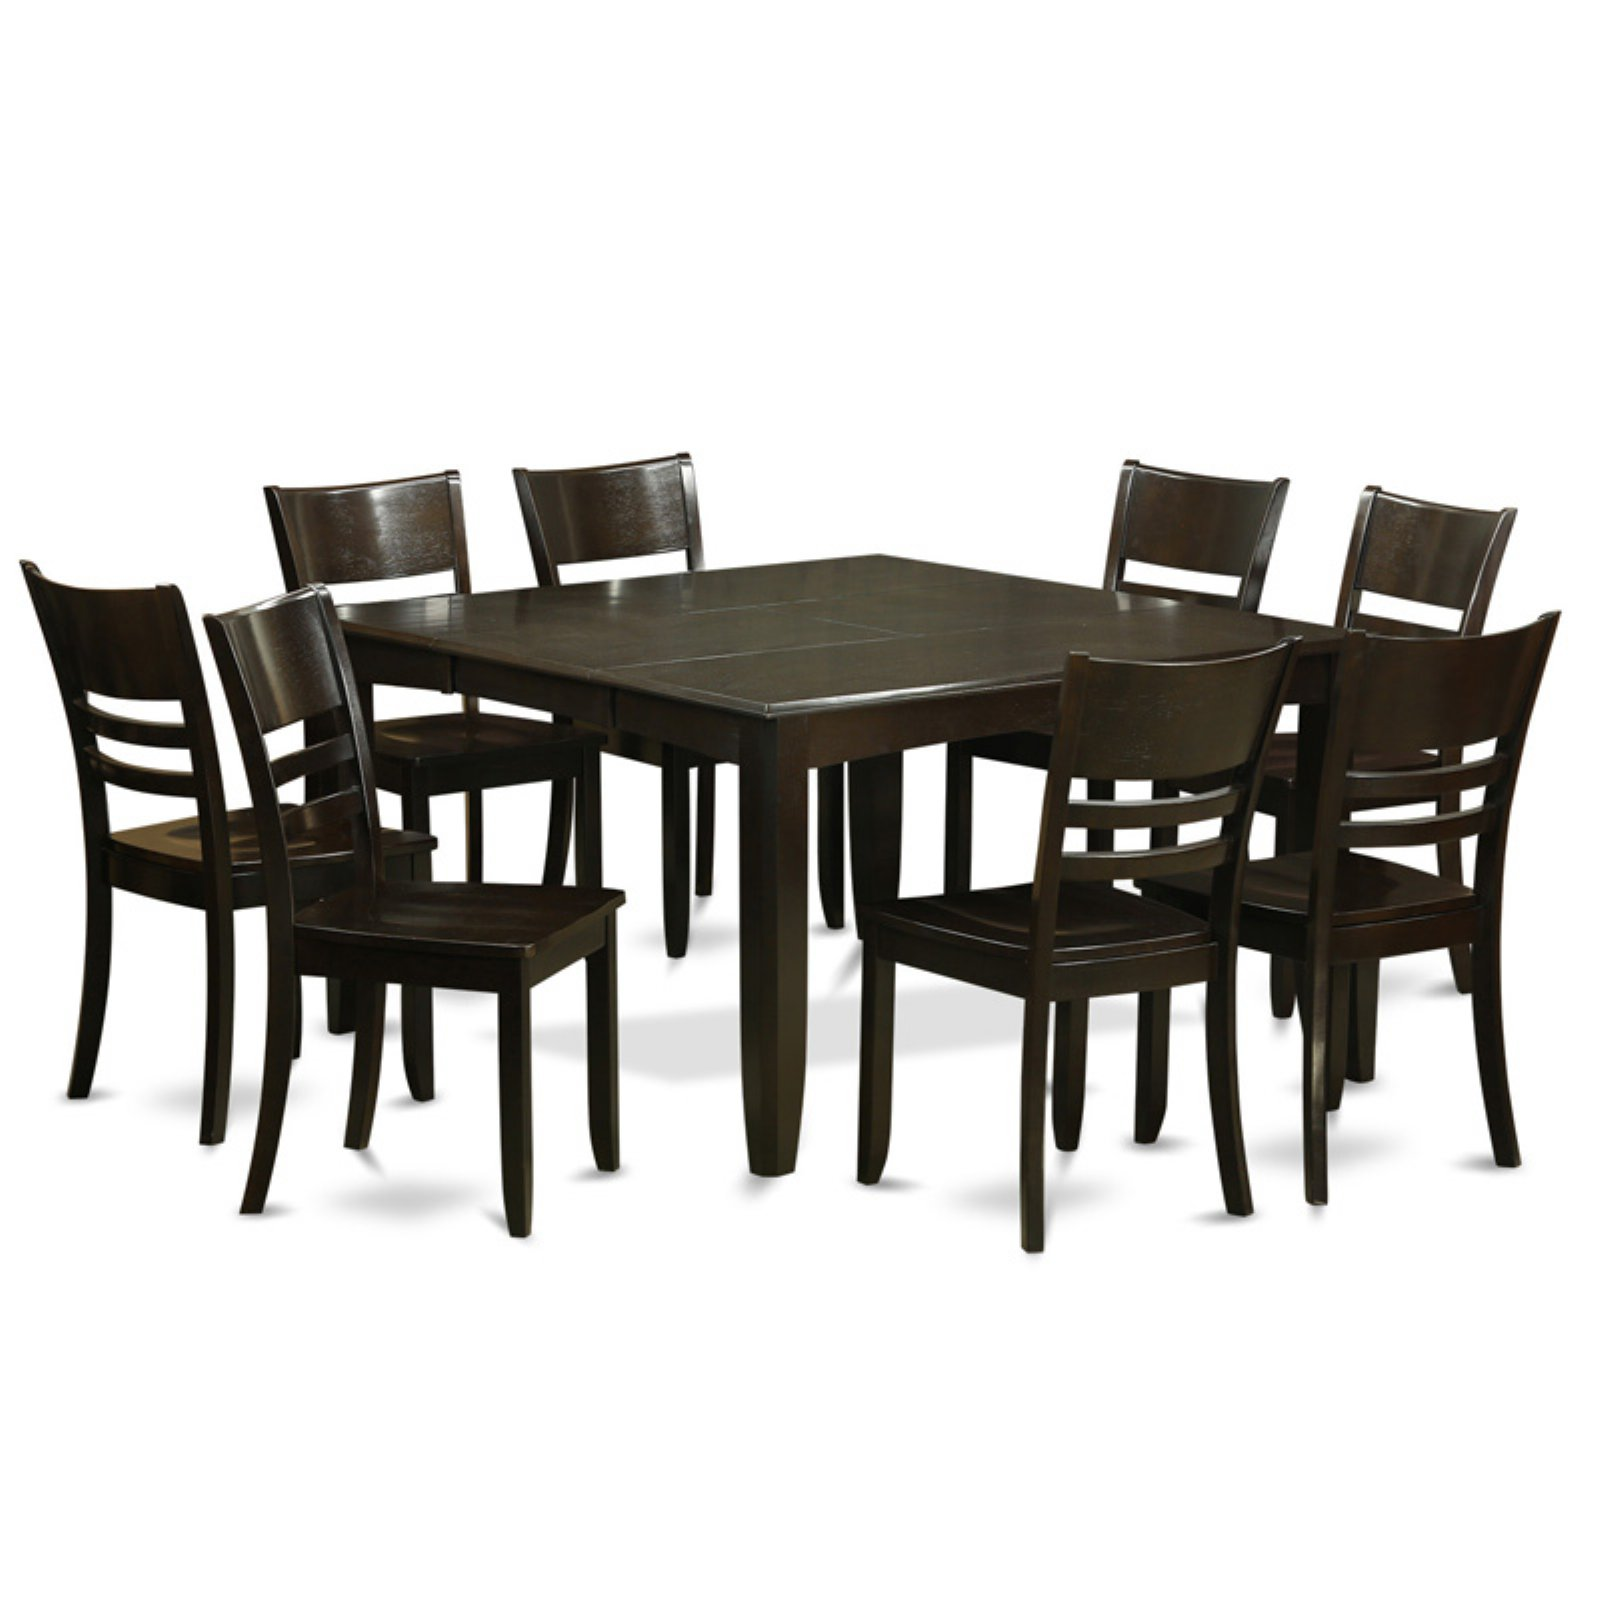 East West Furniture Parfait 9 Piece Mission Dining Table Set